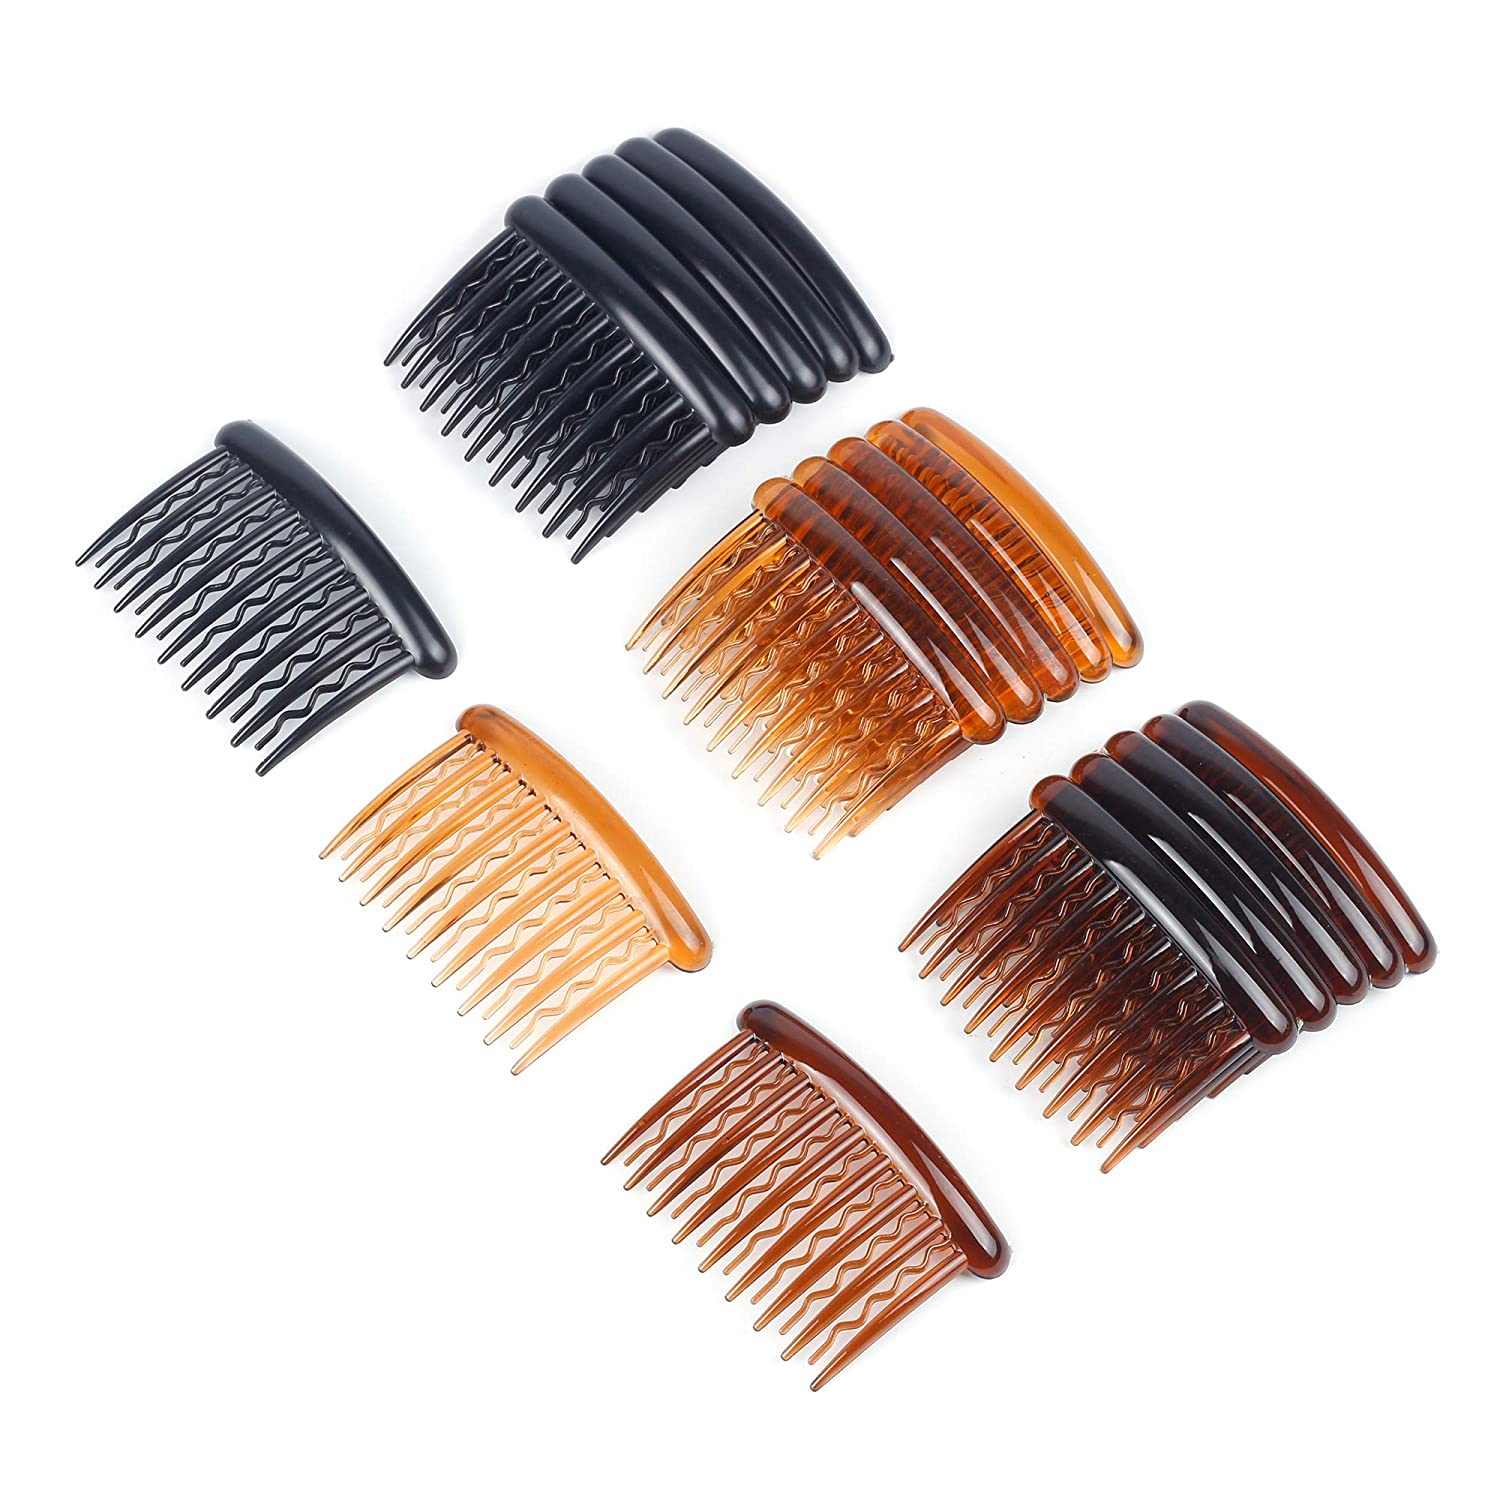 WBCBEC 18 Pieces Plastic Teeth Hair Combs Tortoise Side Comb Hair Accessories for Fine Hair : Beauty